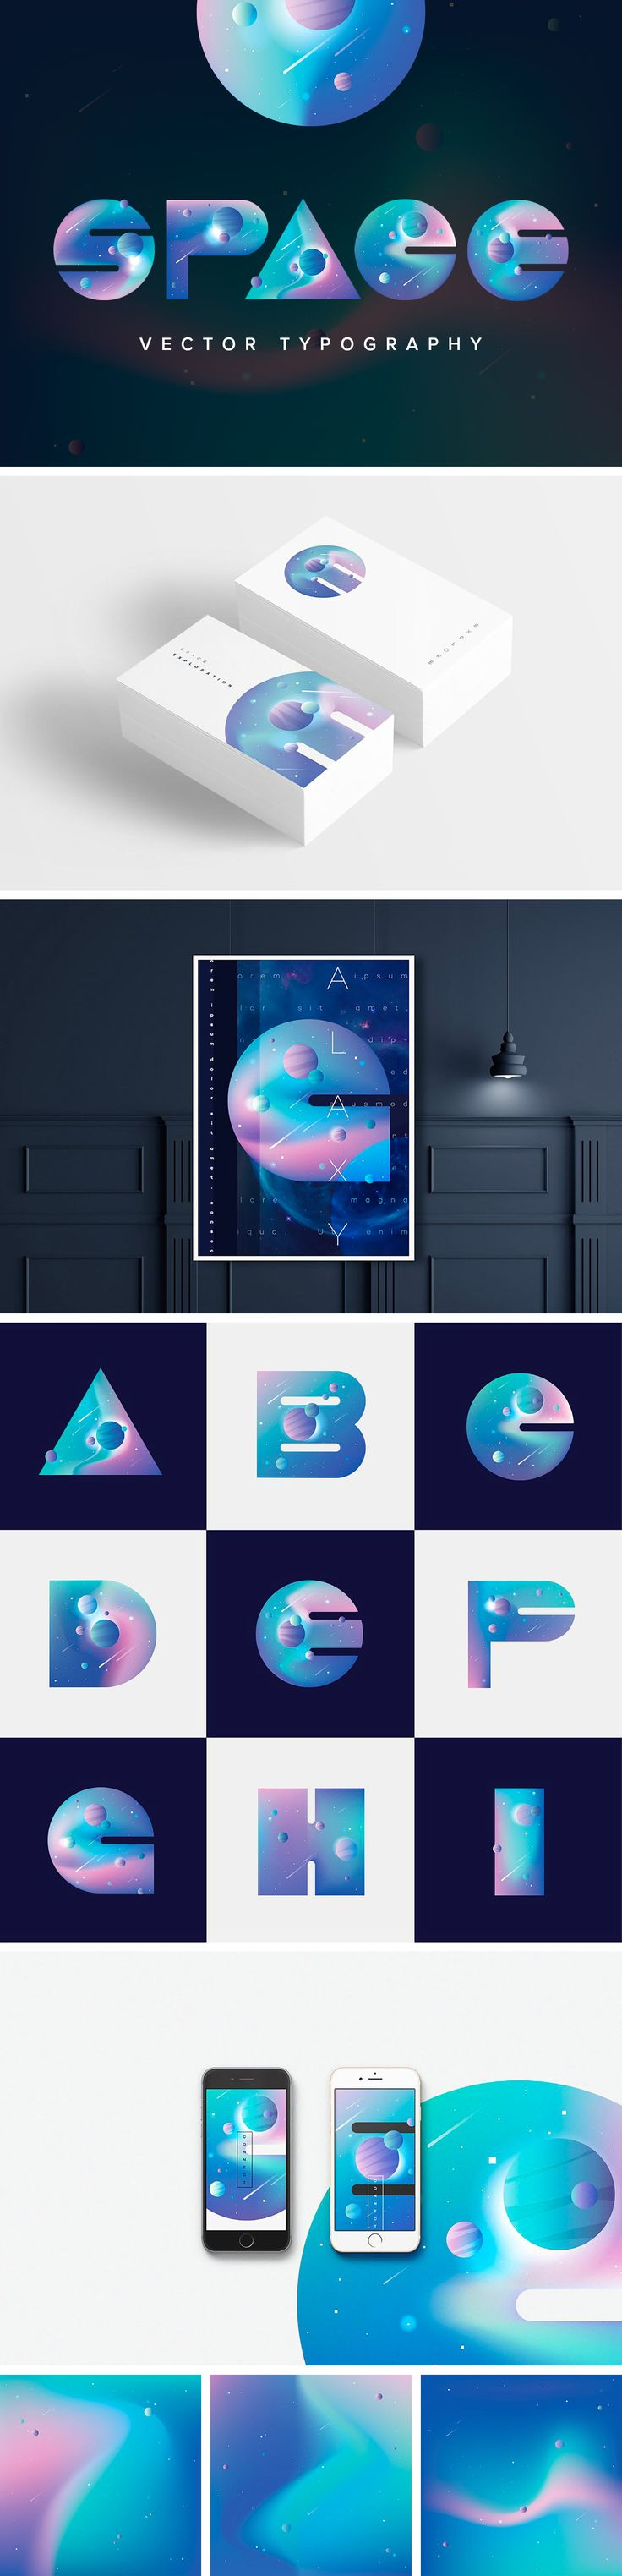 Space Vector Typography